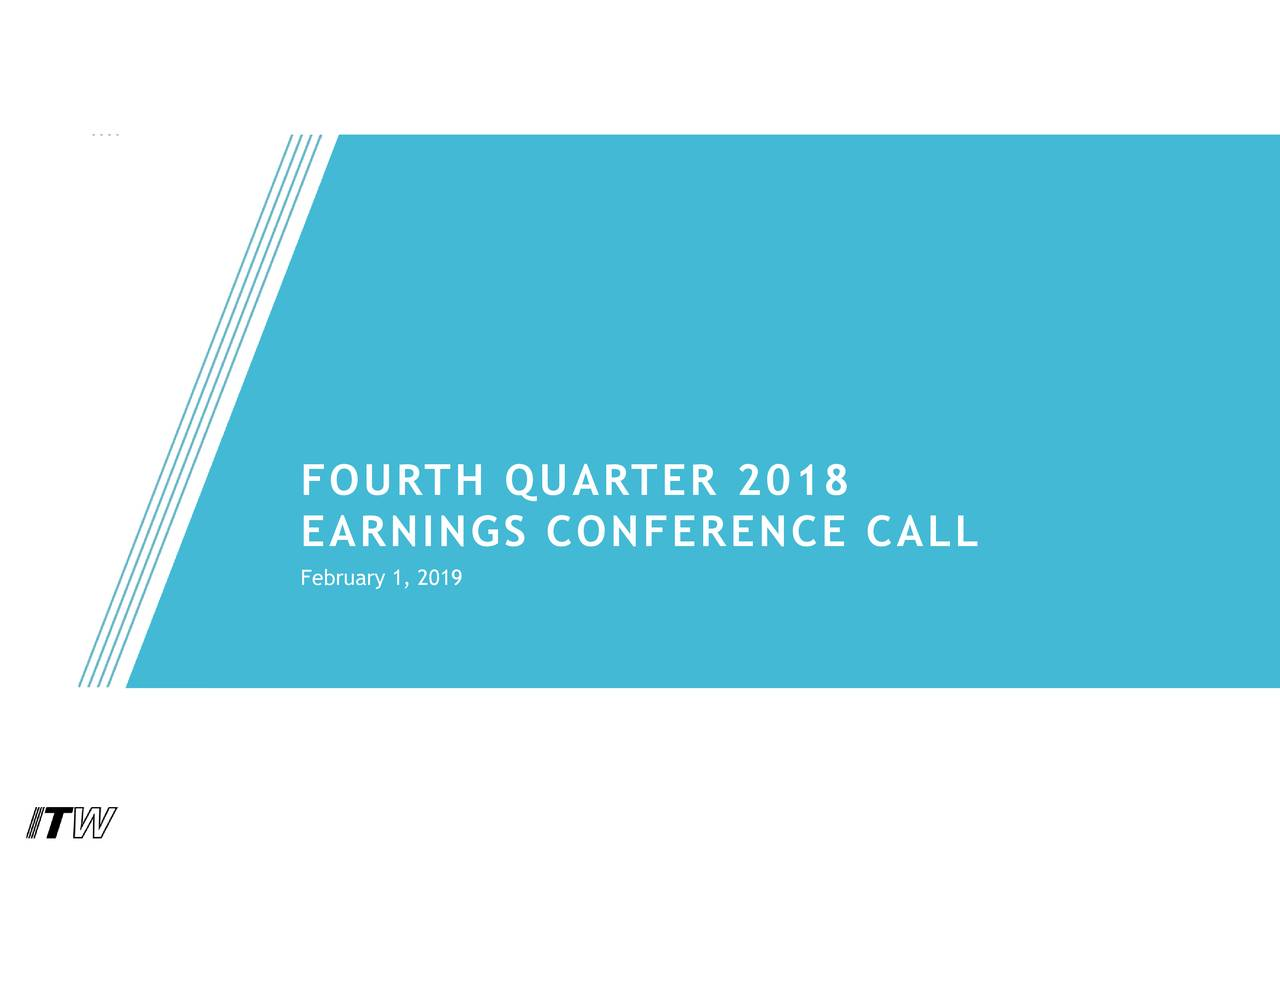 EARNINGS CONFERENCE CALL February 1, 2019